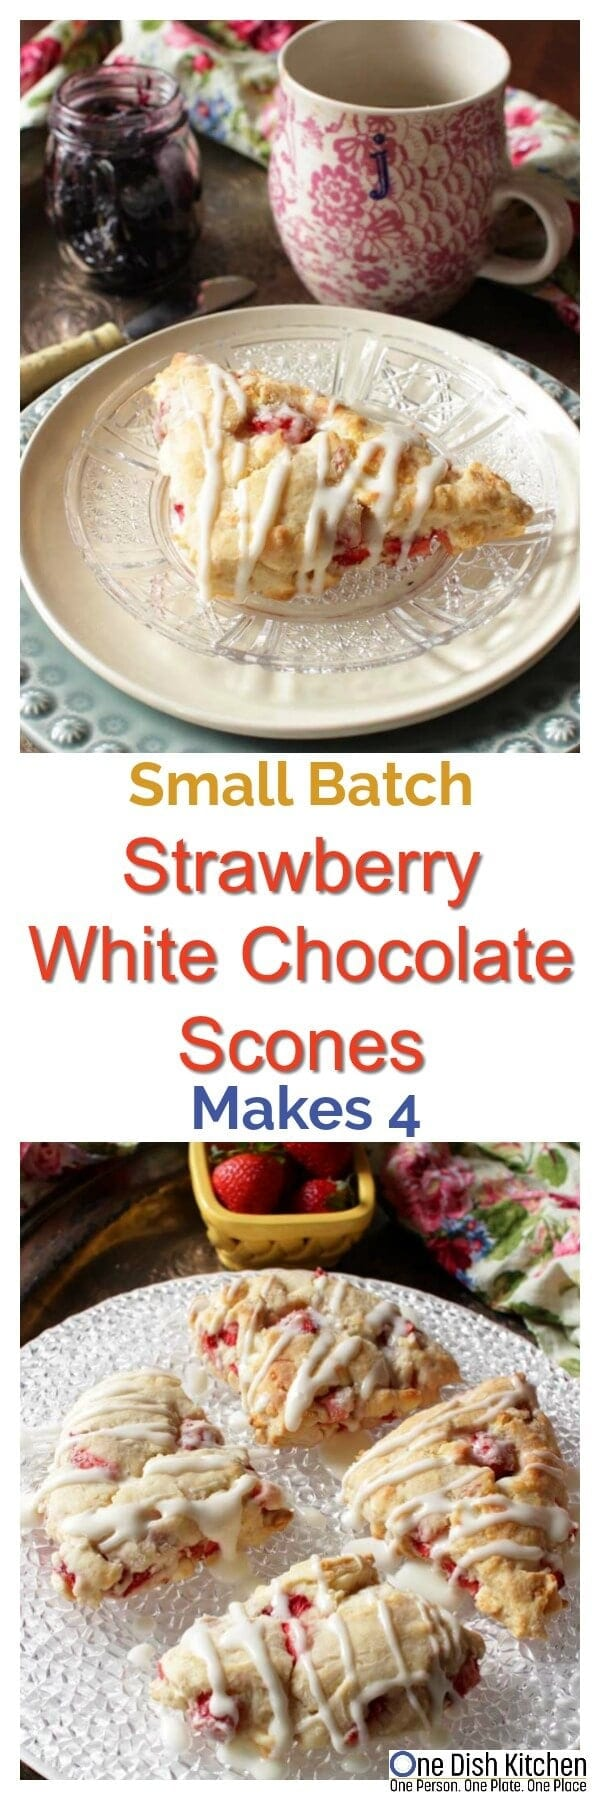 Soft, buttery Small Batch Strawberry White Chocolate Scones made with fresh strawberries. These fruit filled scones are perfect for breakfast or dessert and are so easy to make. This recipe will give you 4 lovely scones. | One Dish Kitchen | onedishkitchen.com